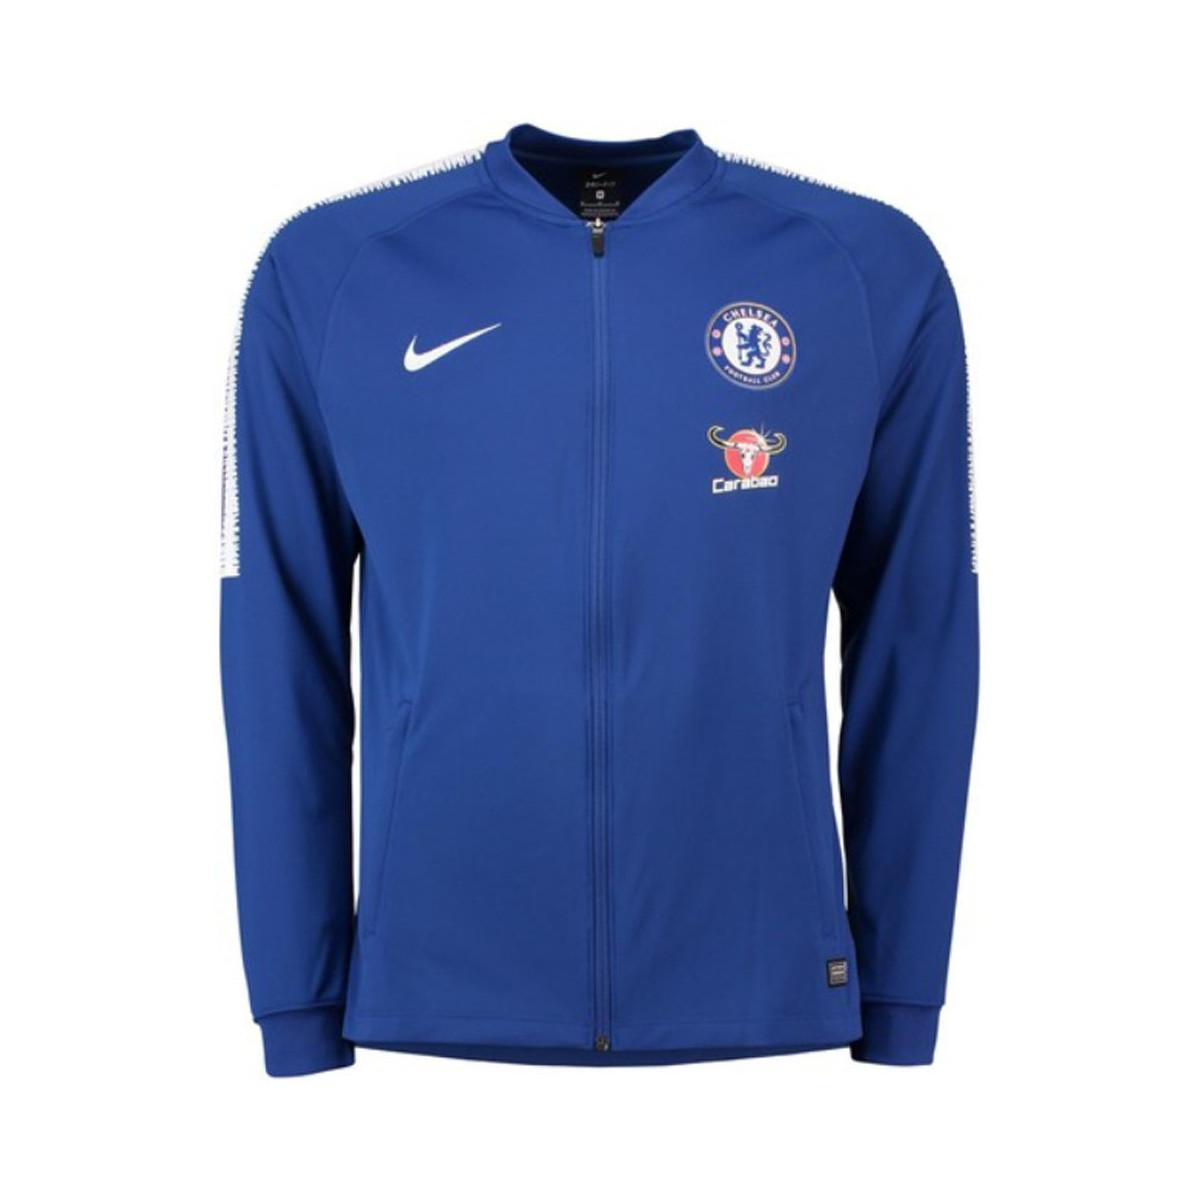 cffcd82ad Nike 2018-2019 Chelsea Squad Track Jacket Men's Tracksuit Jacket In ...